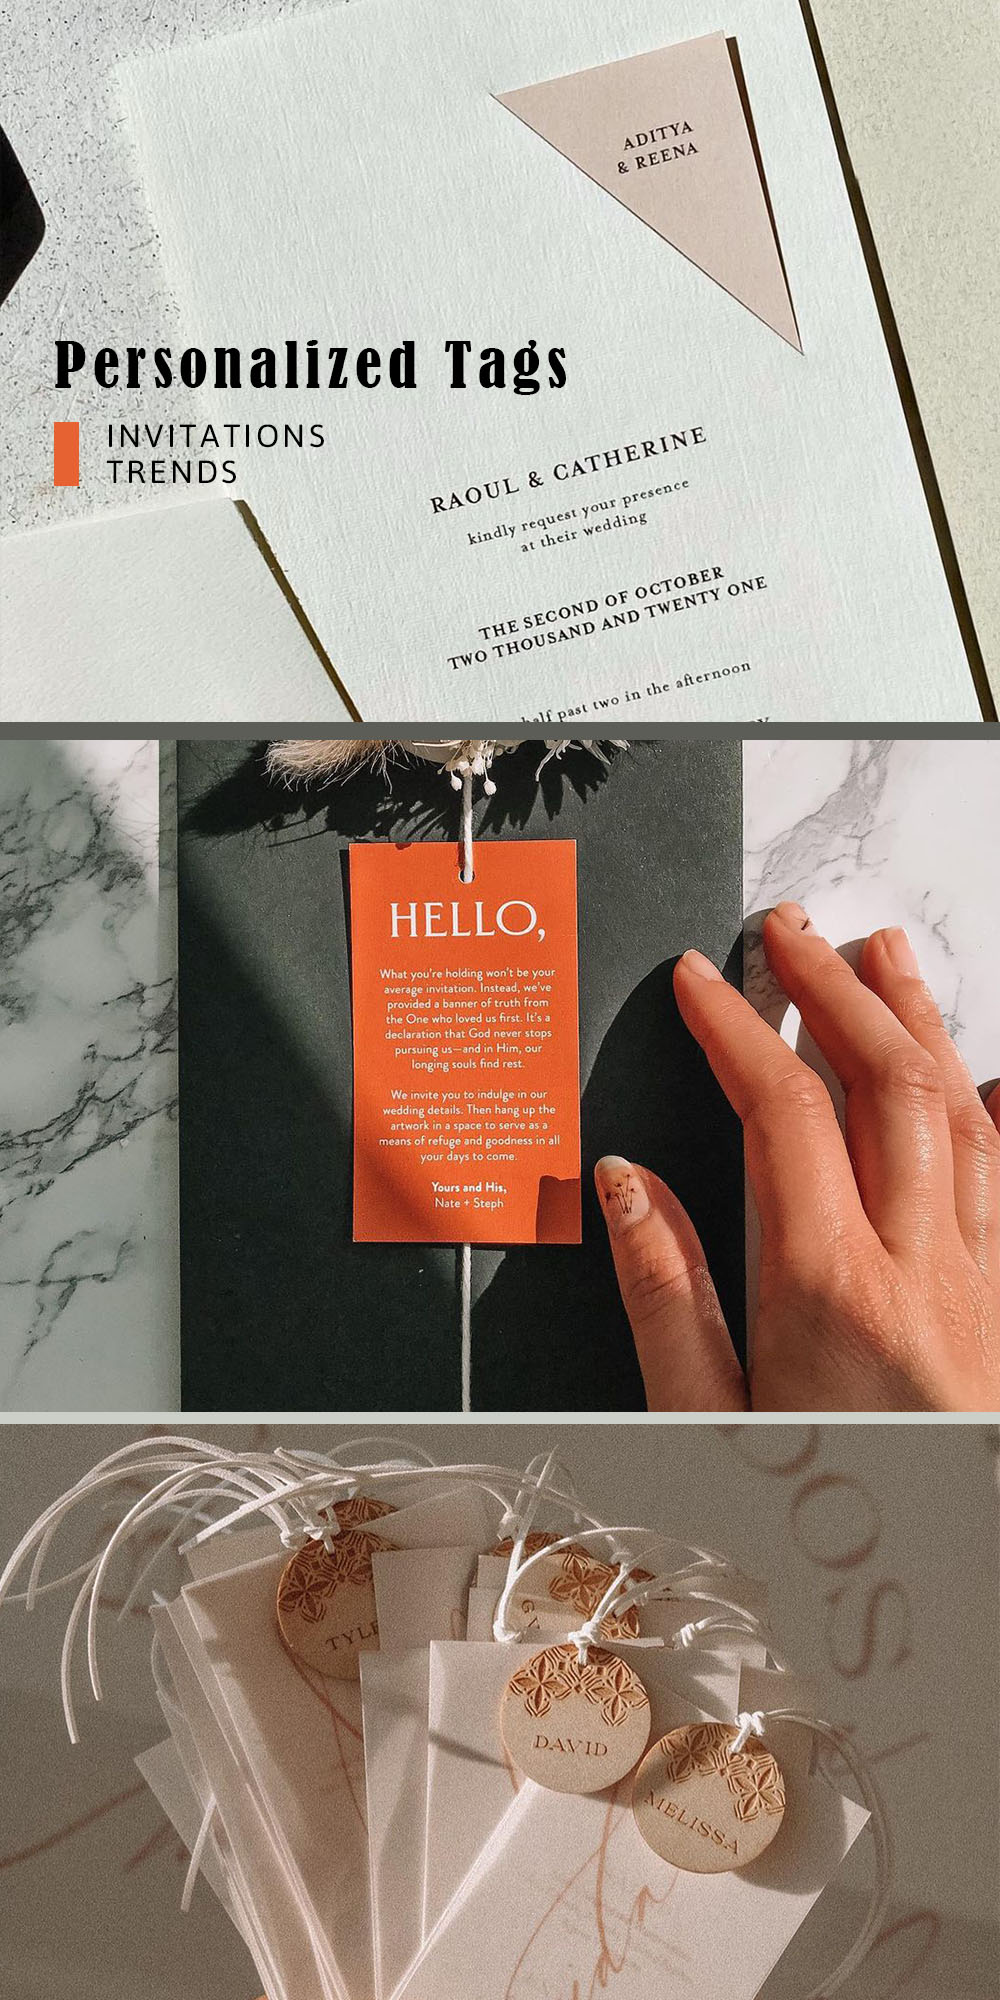 wedding invitation card with personalized tagsjpg